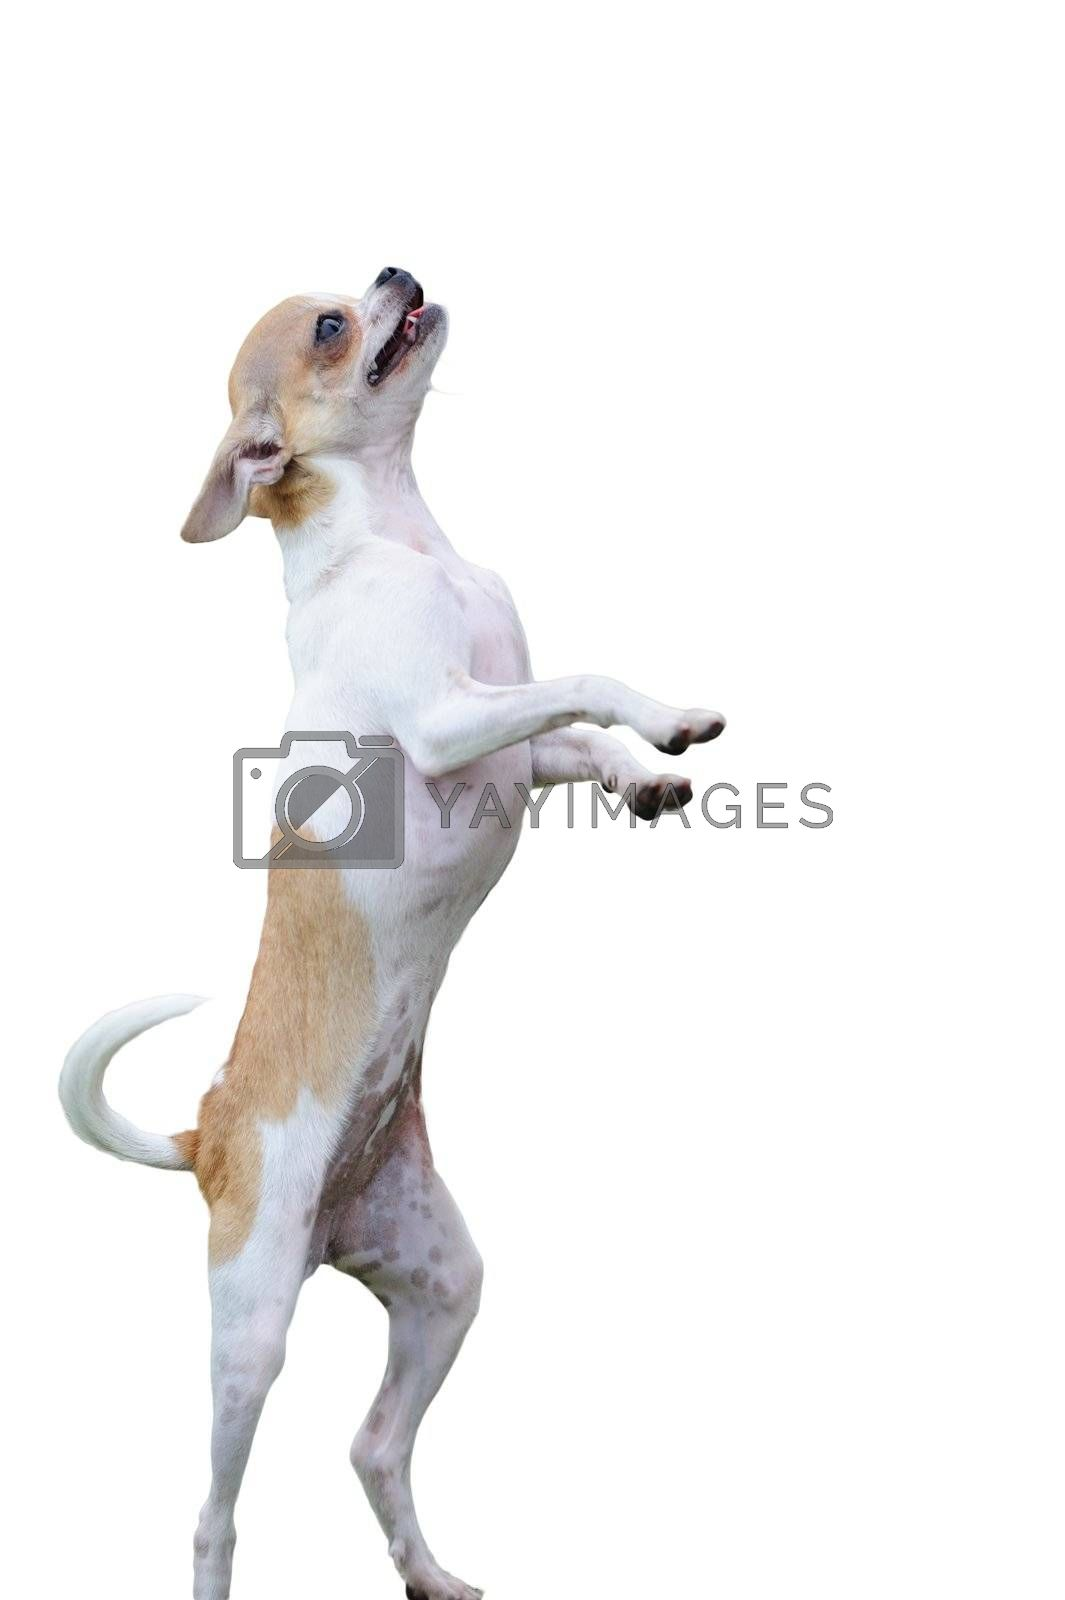 Chihuahua dog standing on two legs isolated on white background